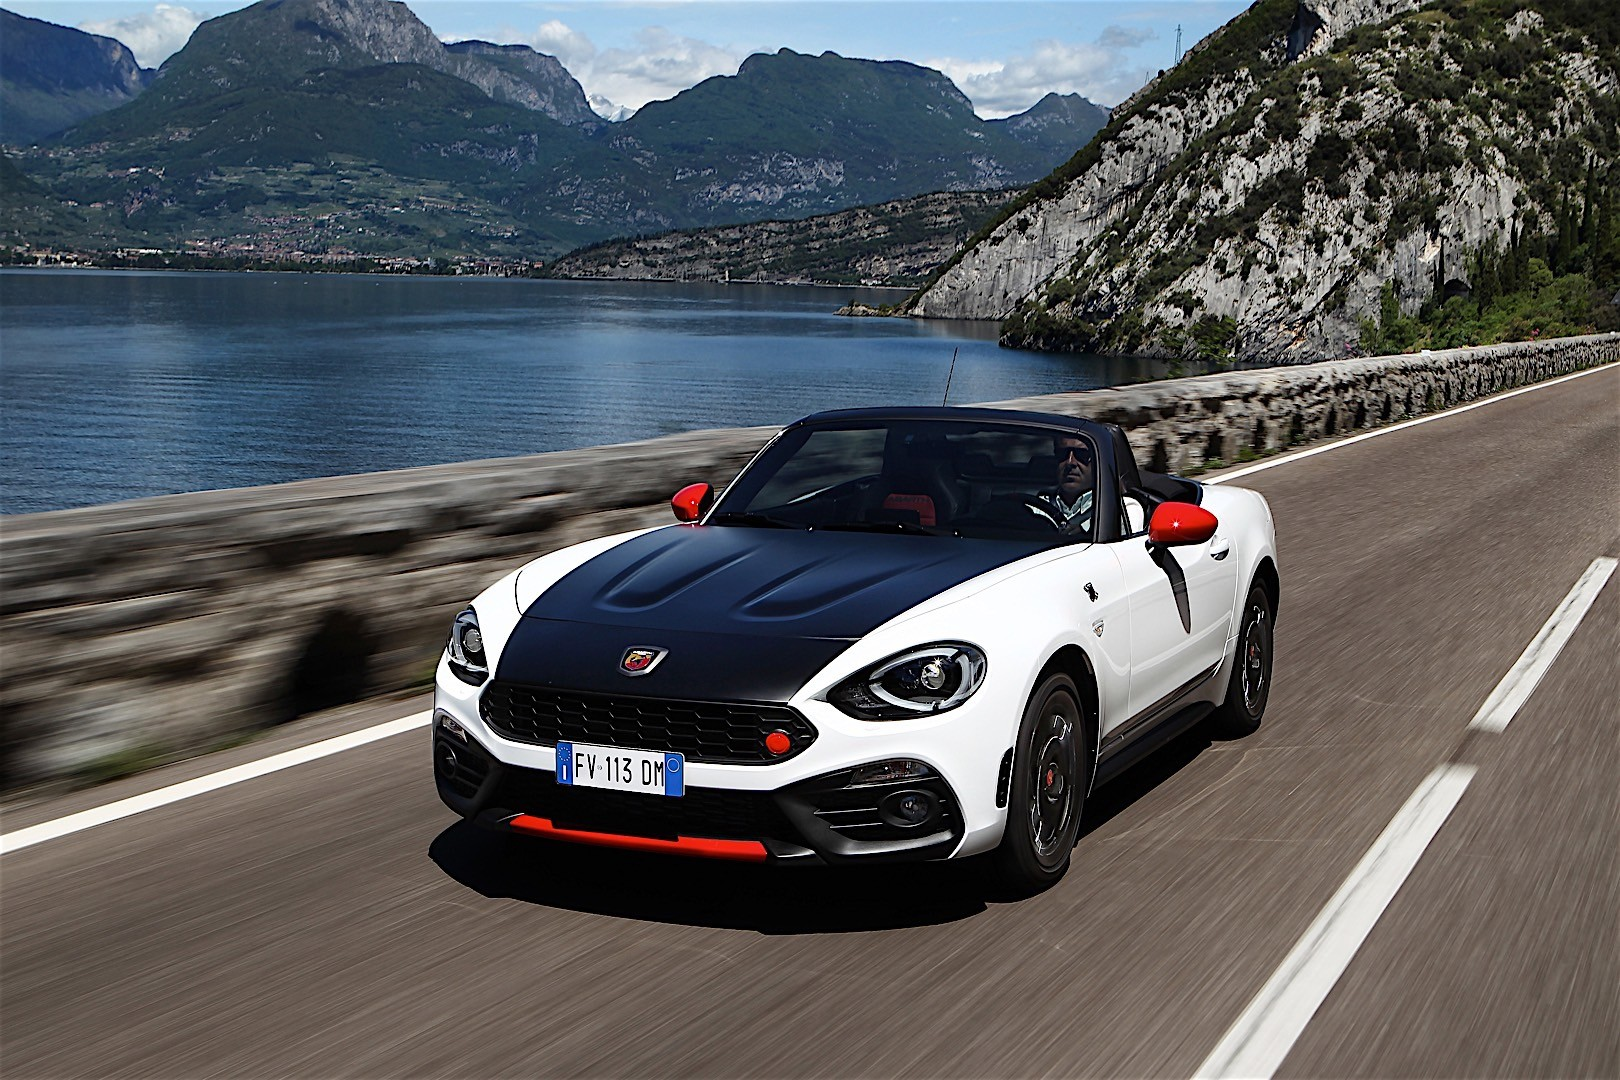 Fiat 124 Abarth Spider 2017 on new fiat spider 2017